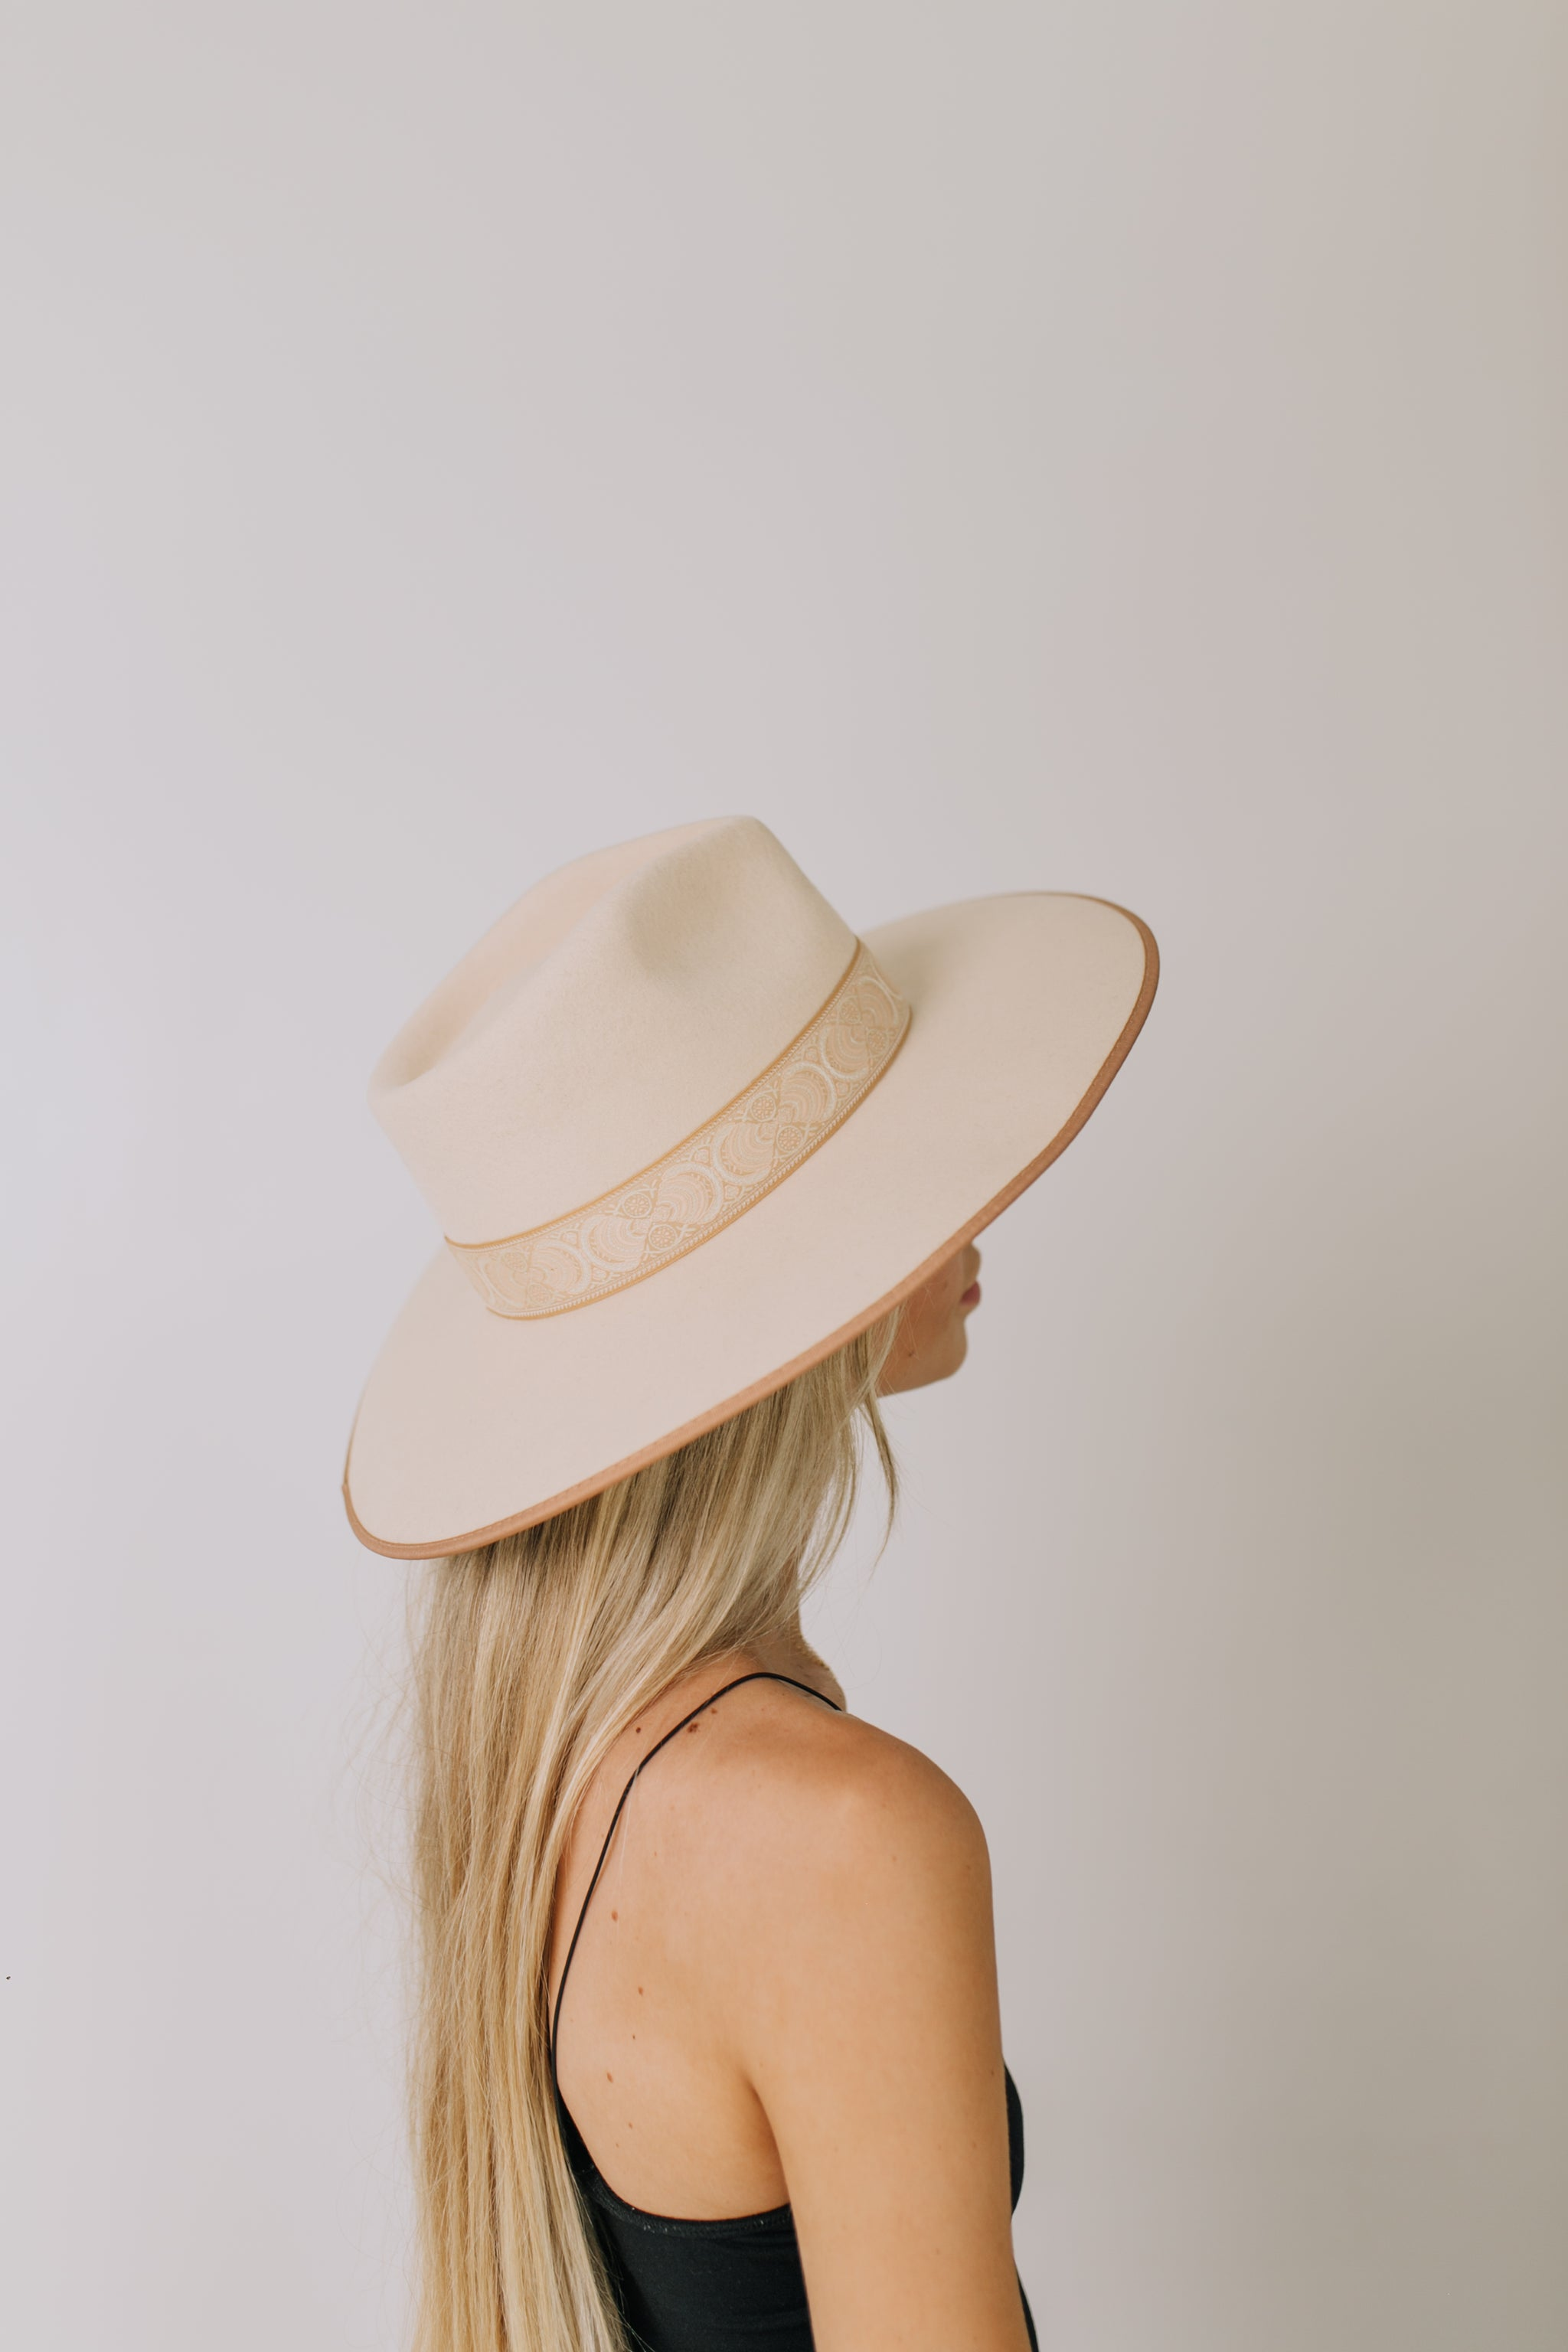 ... Special Ivory Rancher Special 9a0892d222a4